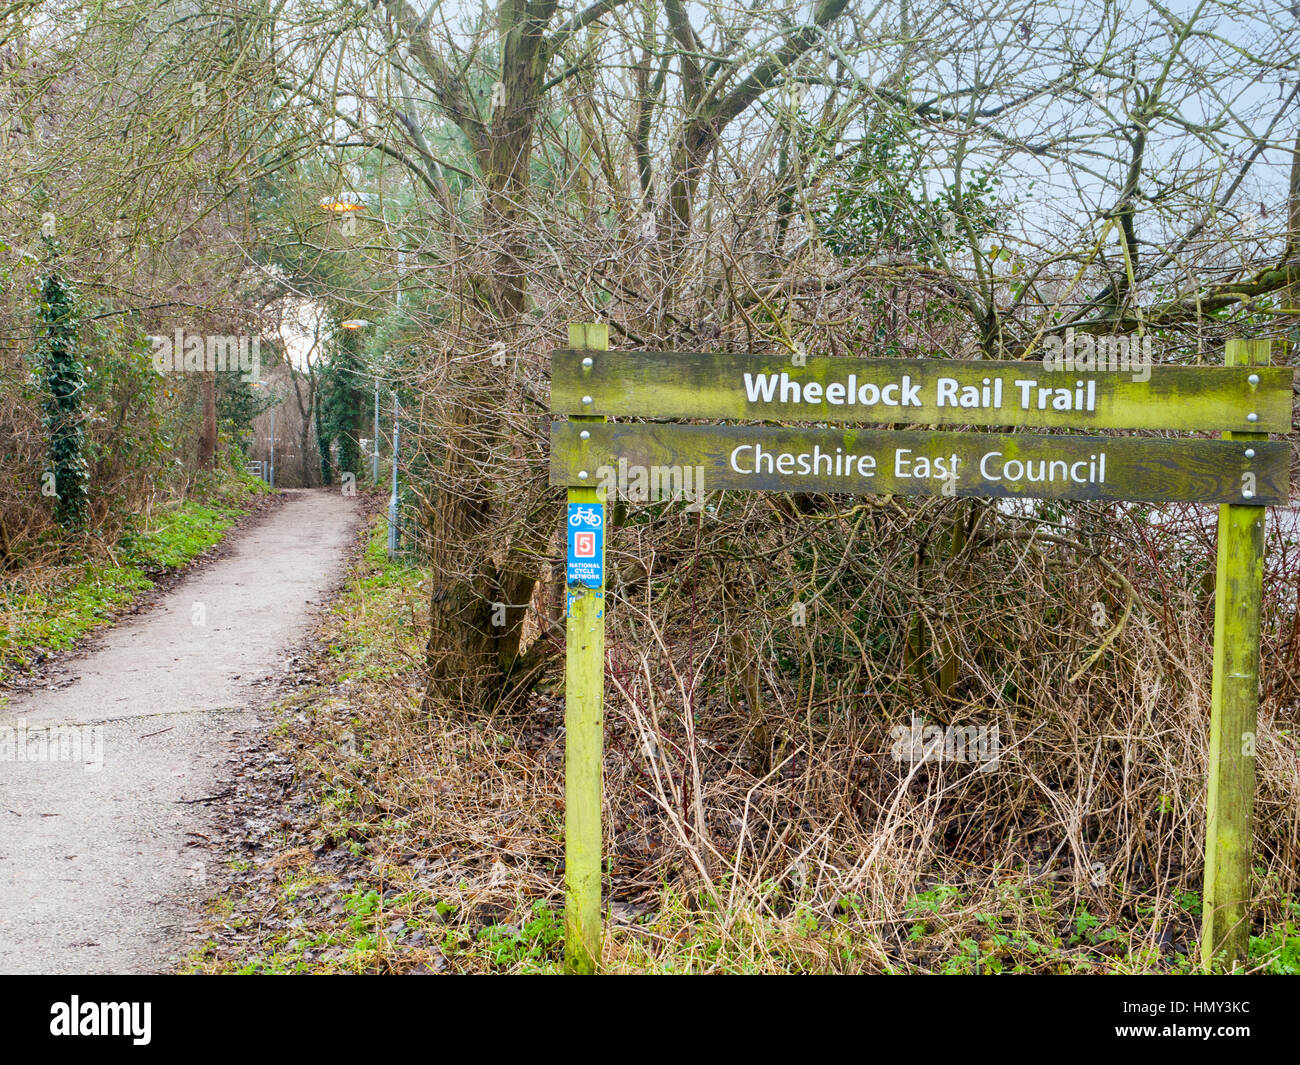 Wheelock rail trail is a disused rail track now public footpath in Cheshire UK - Stock Image